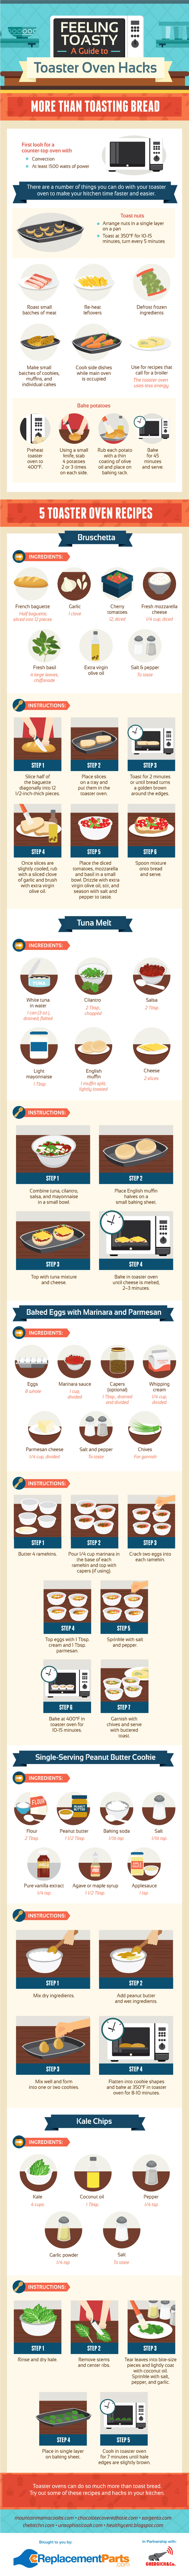 Toasty Guide Toaster Oven Hacks - Cooking Infographic